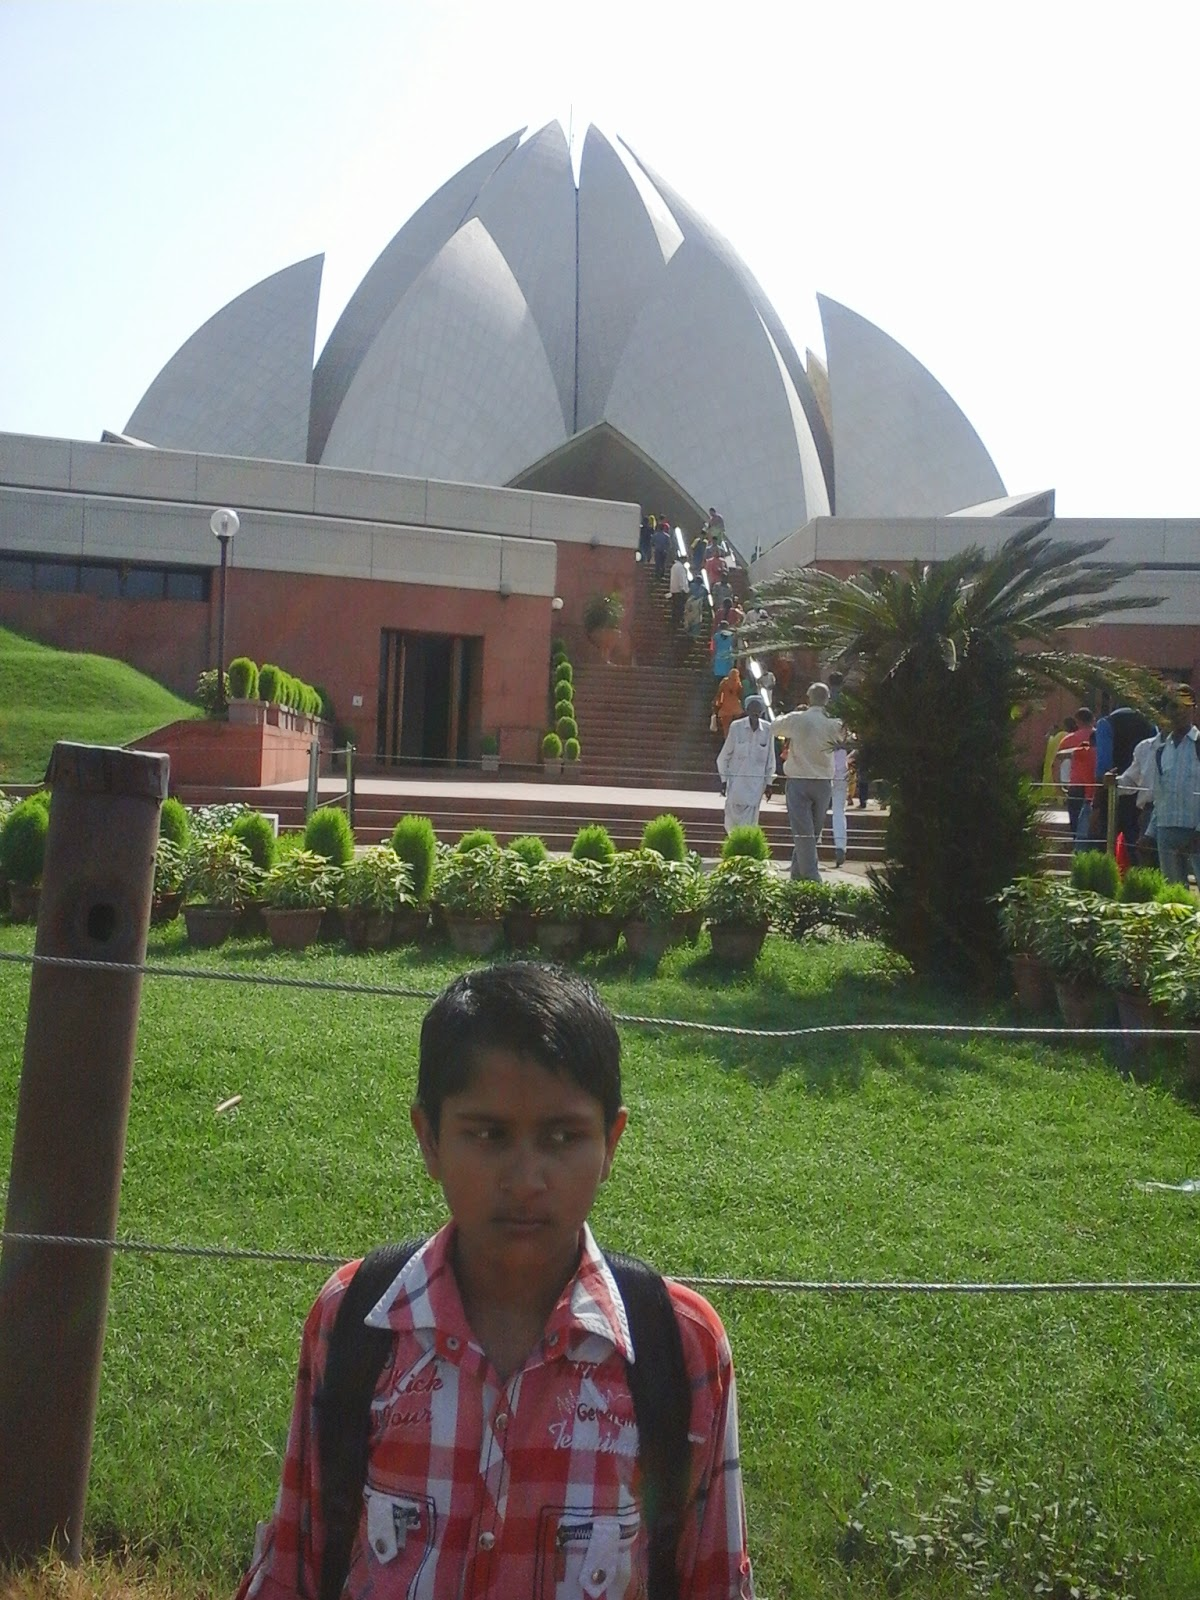 Lotus Temple Kalkaji New Delhi